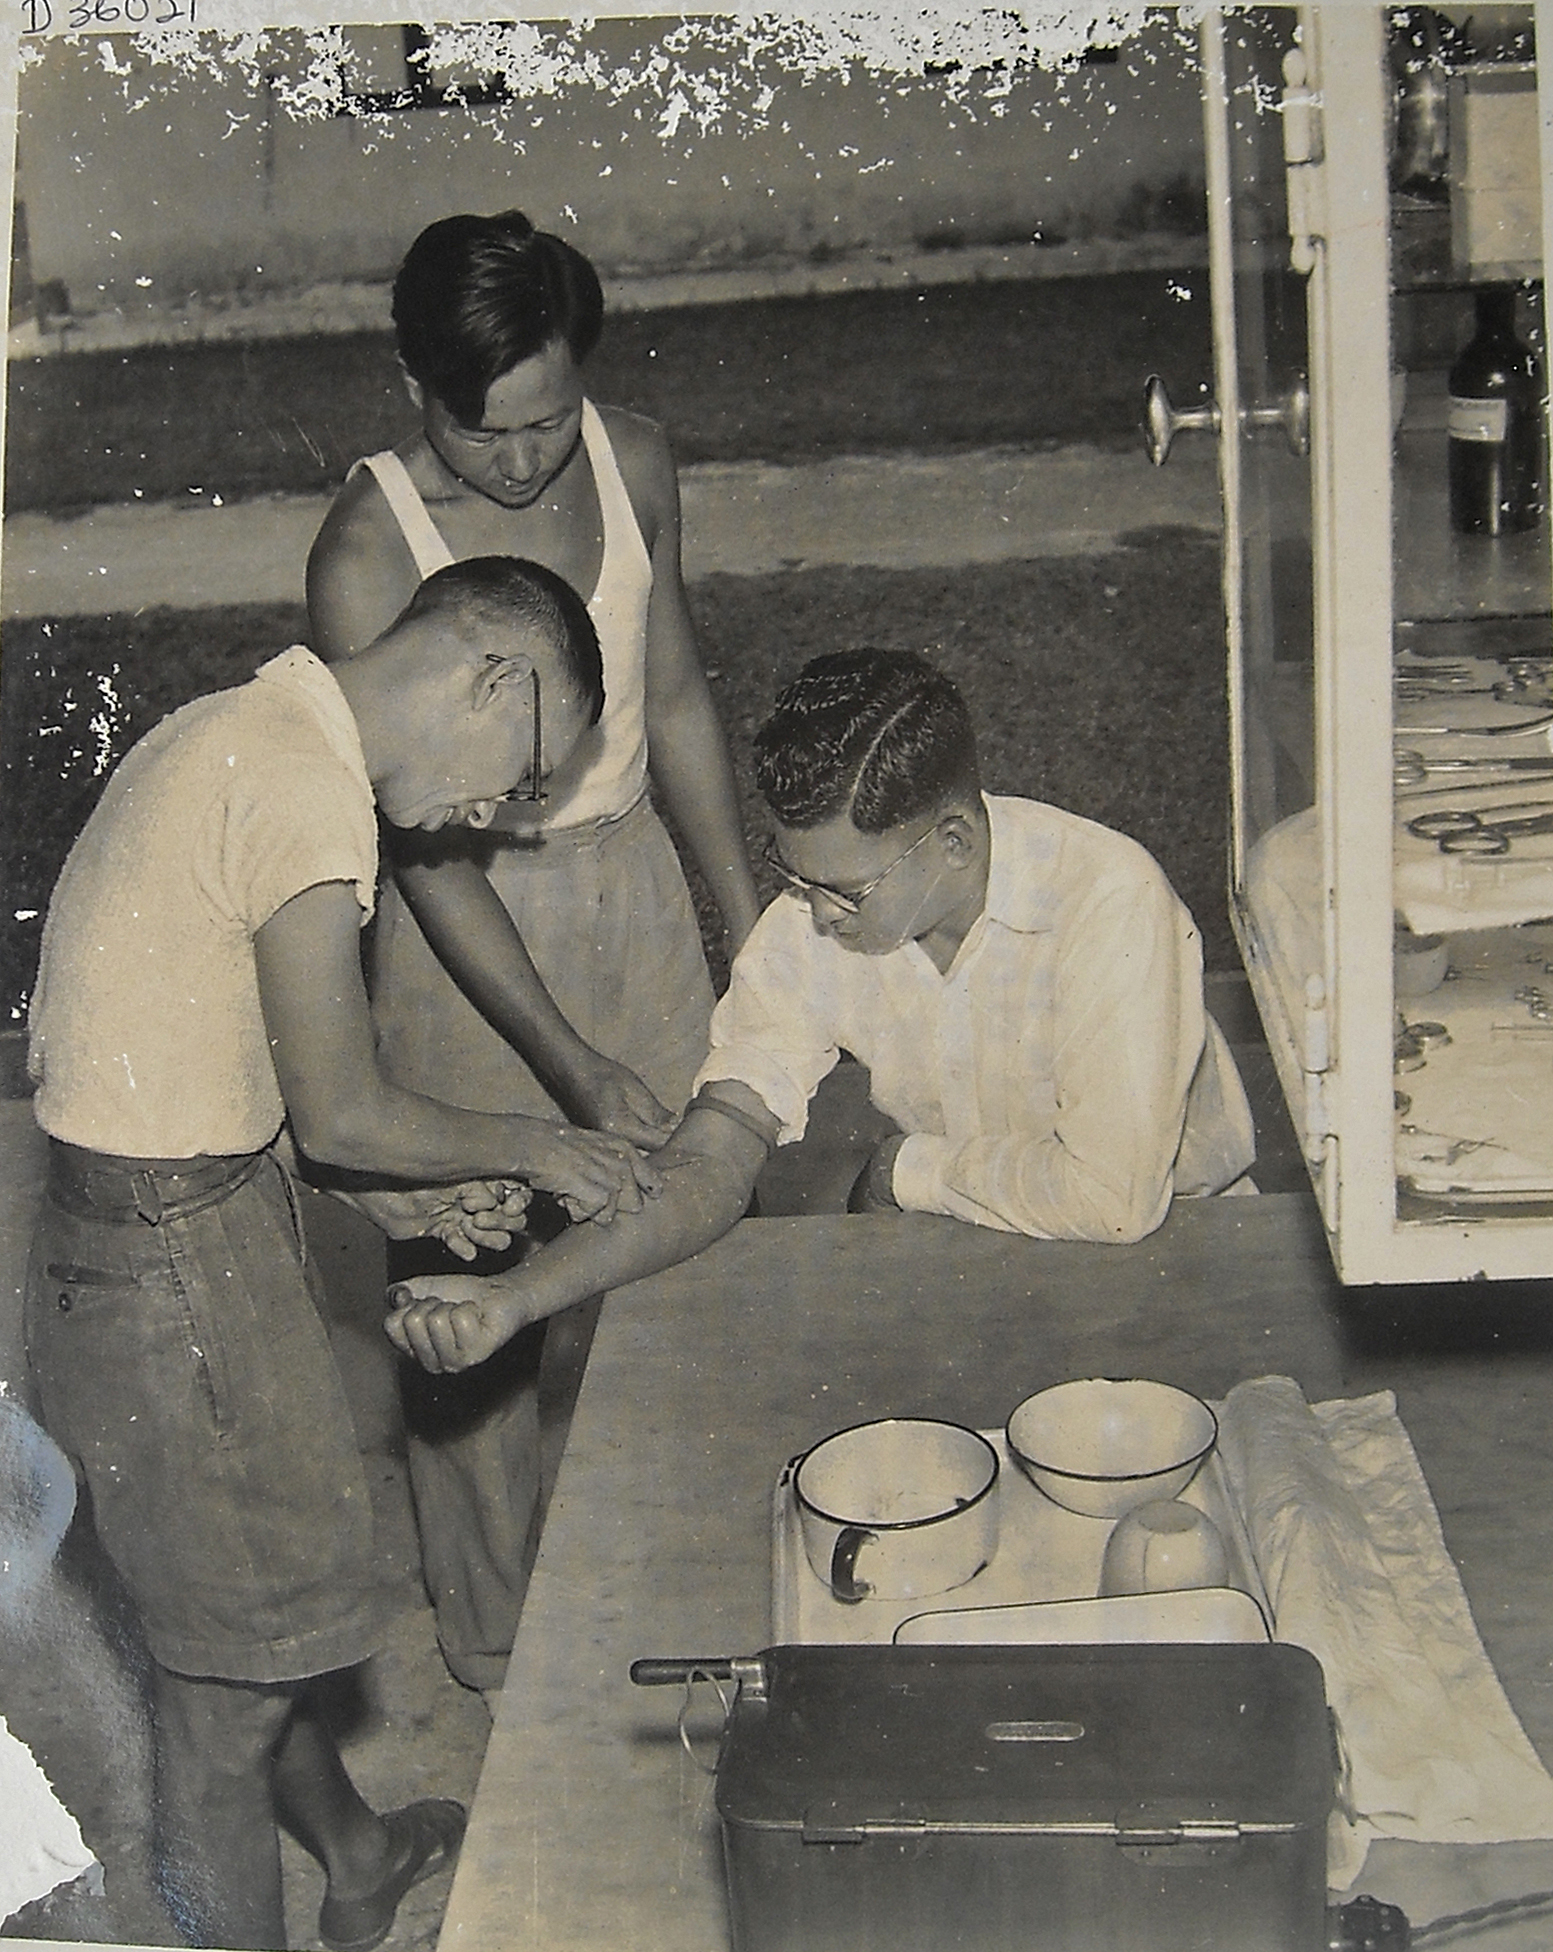 An inmate worker giving an injection to a patient. (photo courtesy of Lai Fook Hin)